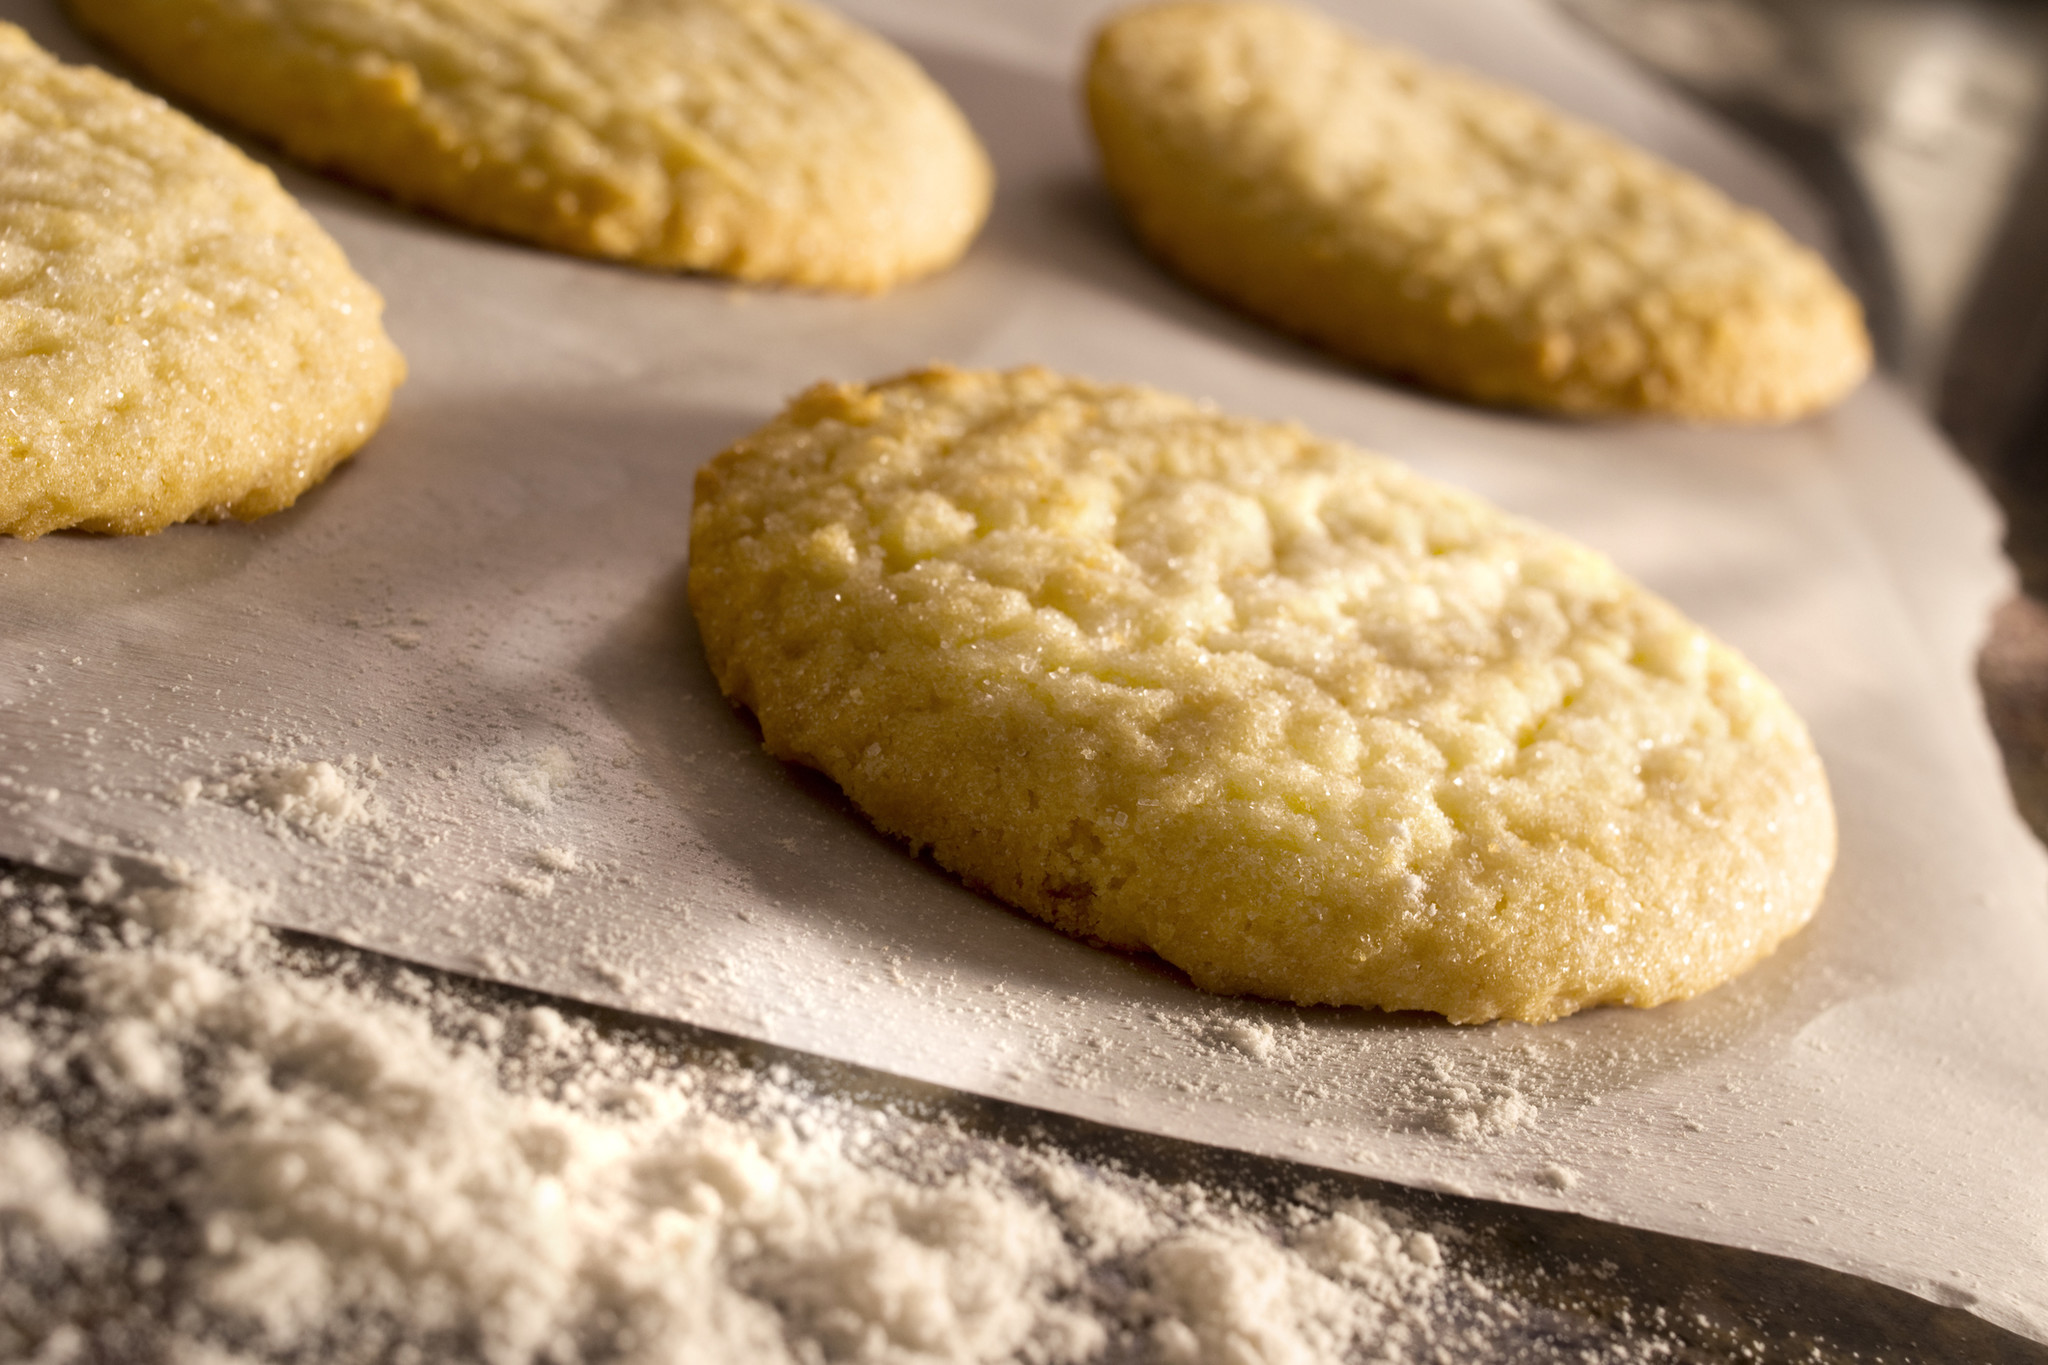 Human ashes may have been baked into cookies students brought to school